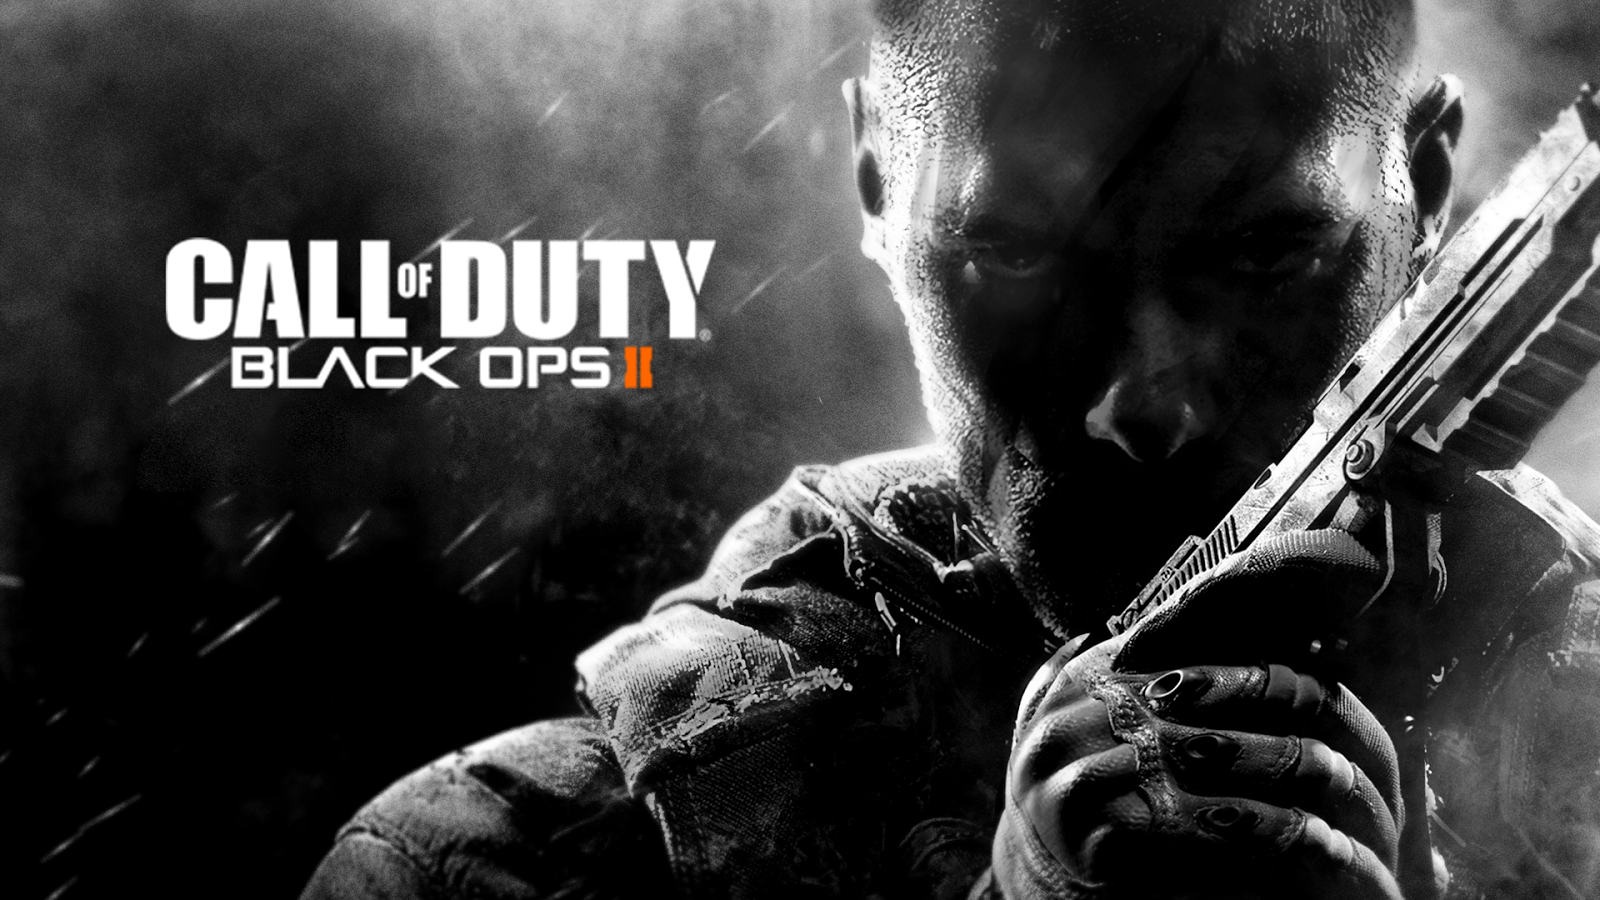 Call Of Duty Black Ops Ii Wallpapers Top Free Call Of